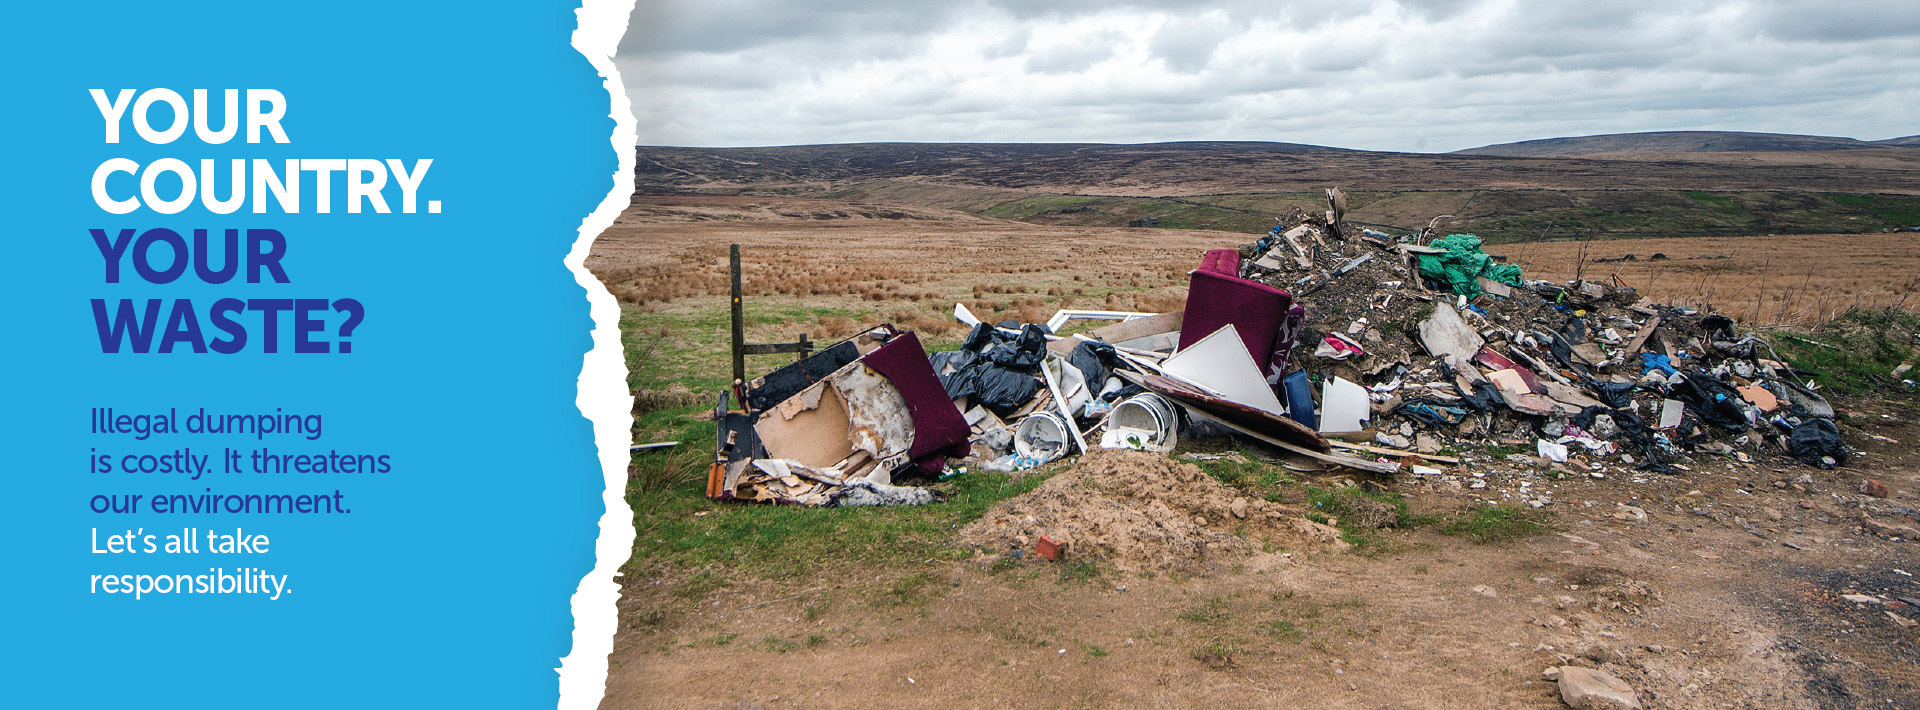 National Communications Campaign calls for all Citizens to get involved in the Fight Against Illegal Dumping